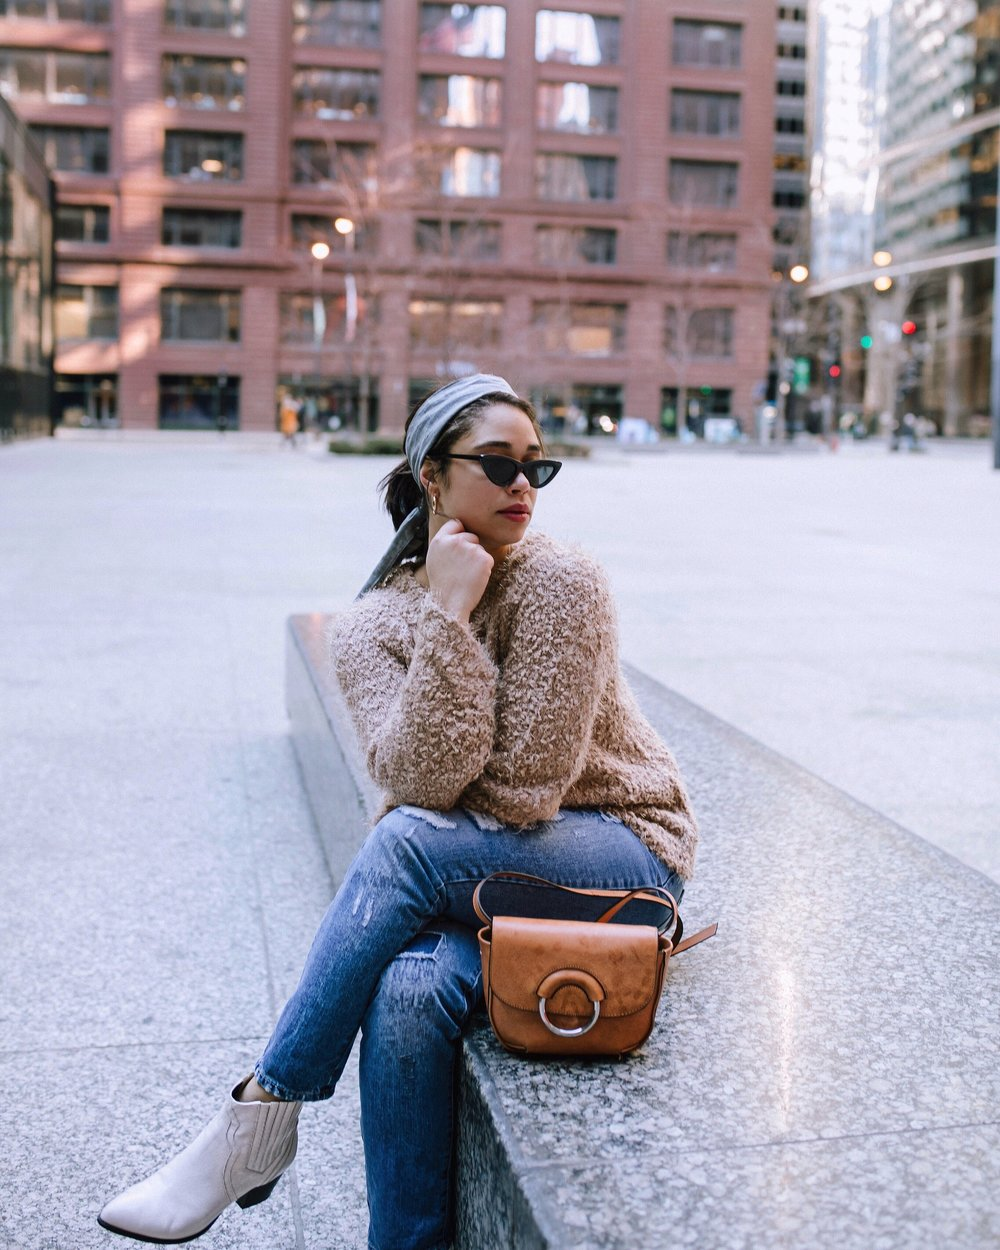 Sweater: Mystree- source: Crossroads Trading  Jeans: Hollywood and Vine- source: Crossroads Trading  Shoes: INC- source: Crossroads Trading  Bag: Banana Republic-source: Crossroads Trading  Headband: Britt Von Decker  Shades: Le Specs  Photography: Ashlee O'neil